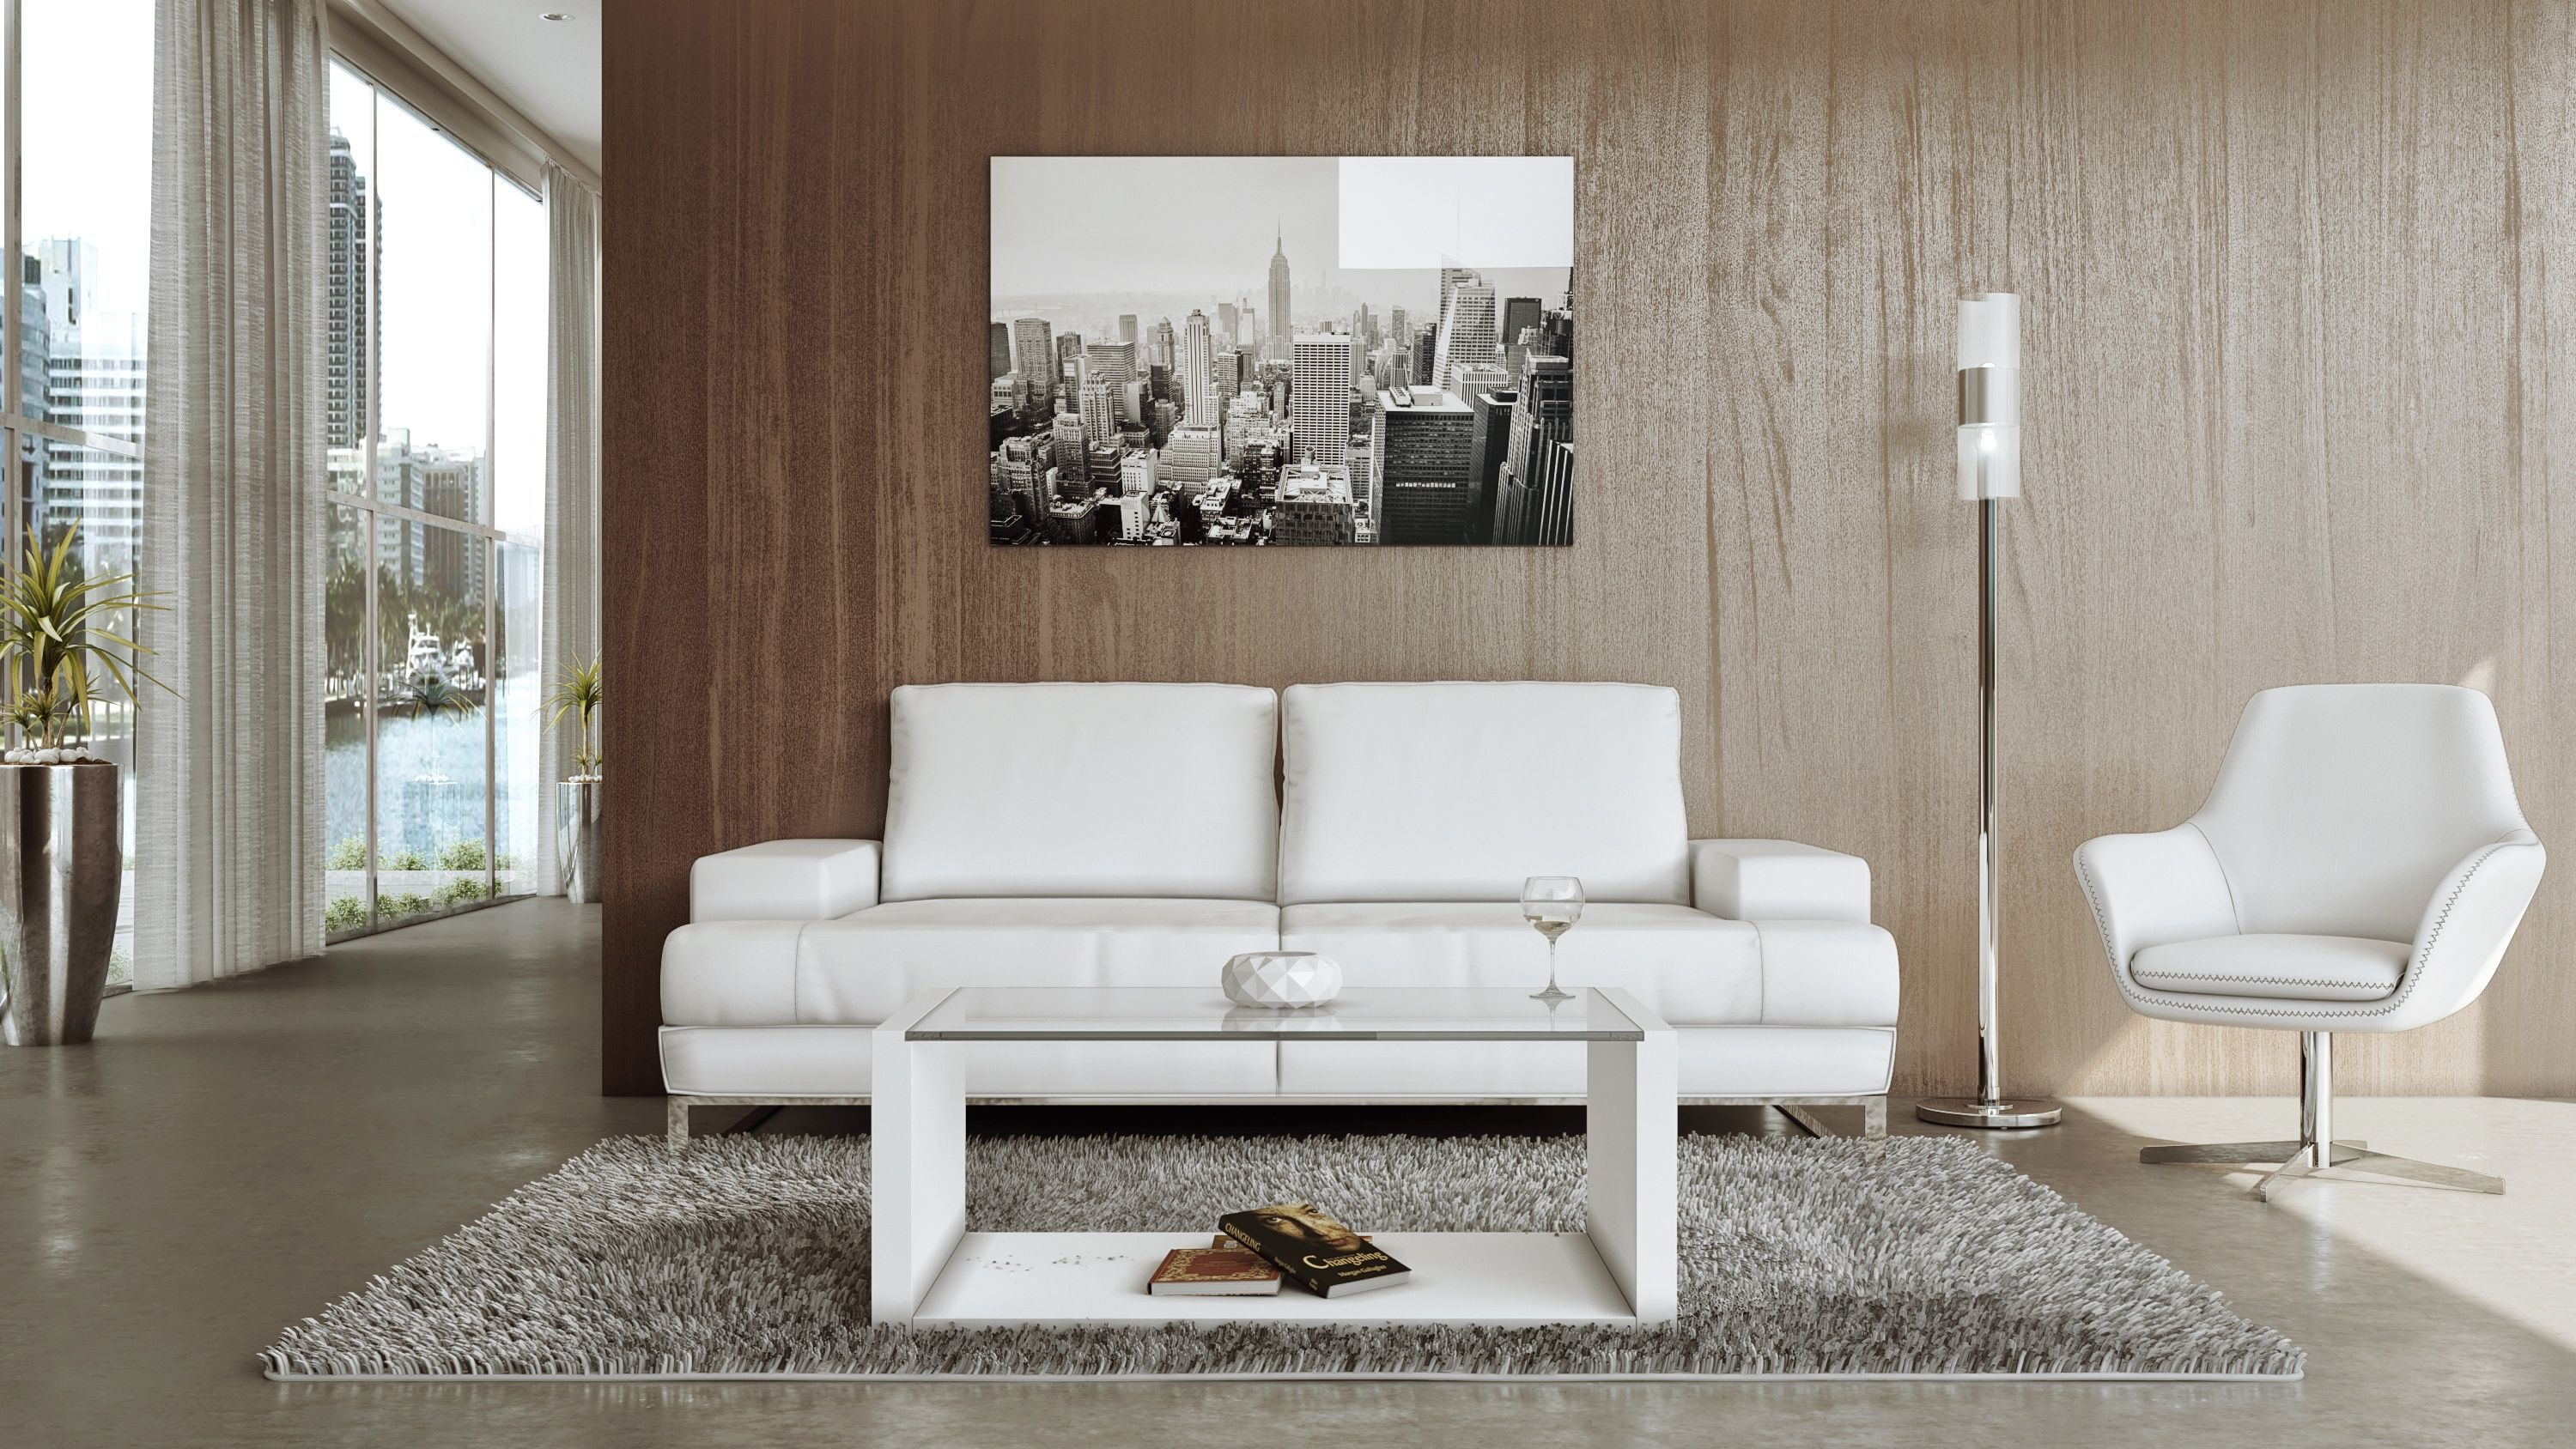 Ethan Sofa White Modern and pact the Ethan Sofa projects a